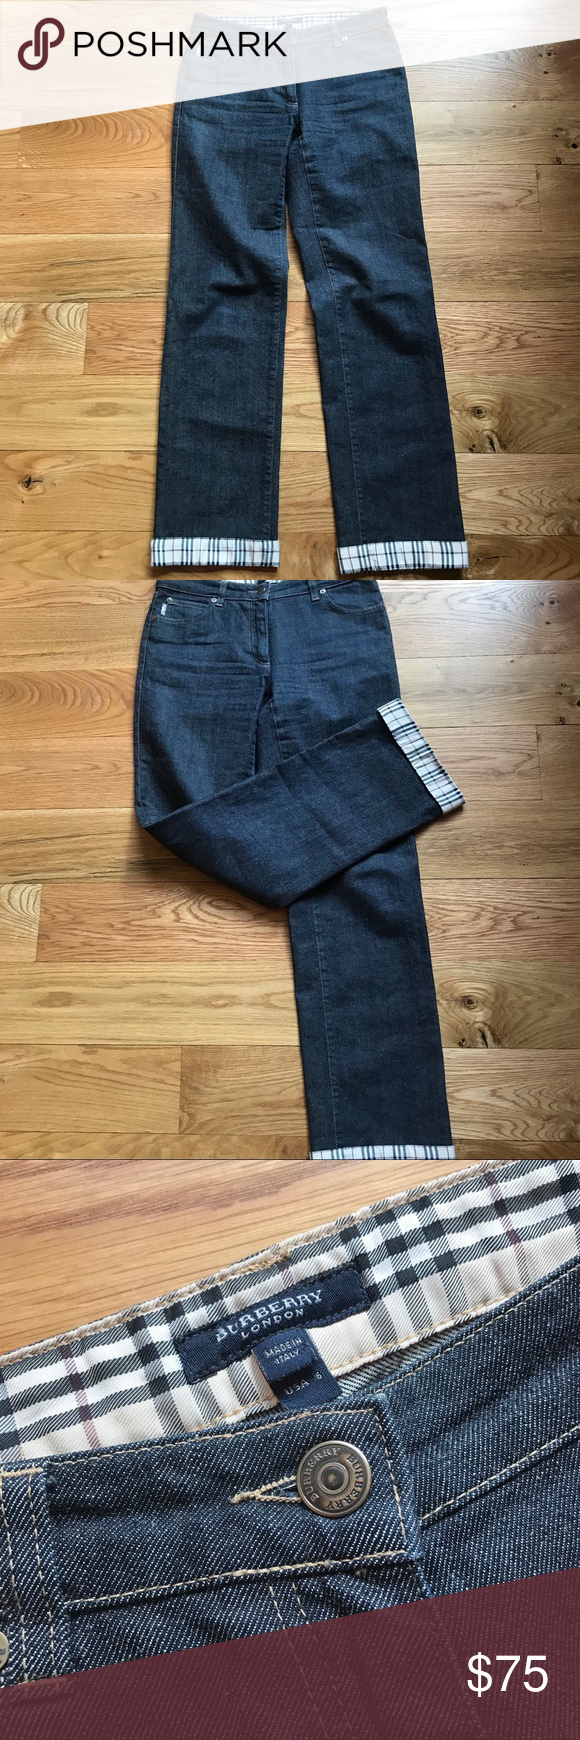 """BURBERRY LONDON NOVA CHECK CUFF JEANS Turned up cuff show off the signature Burberry fabric in these dark indigo blue straight leg jeans. In new condition. Size 6. Approx measures 14"""" waist, 8.5"""" rise and 31"""" inseam. Burberry Jeans Straight Leg"""